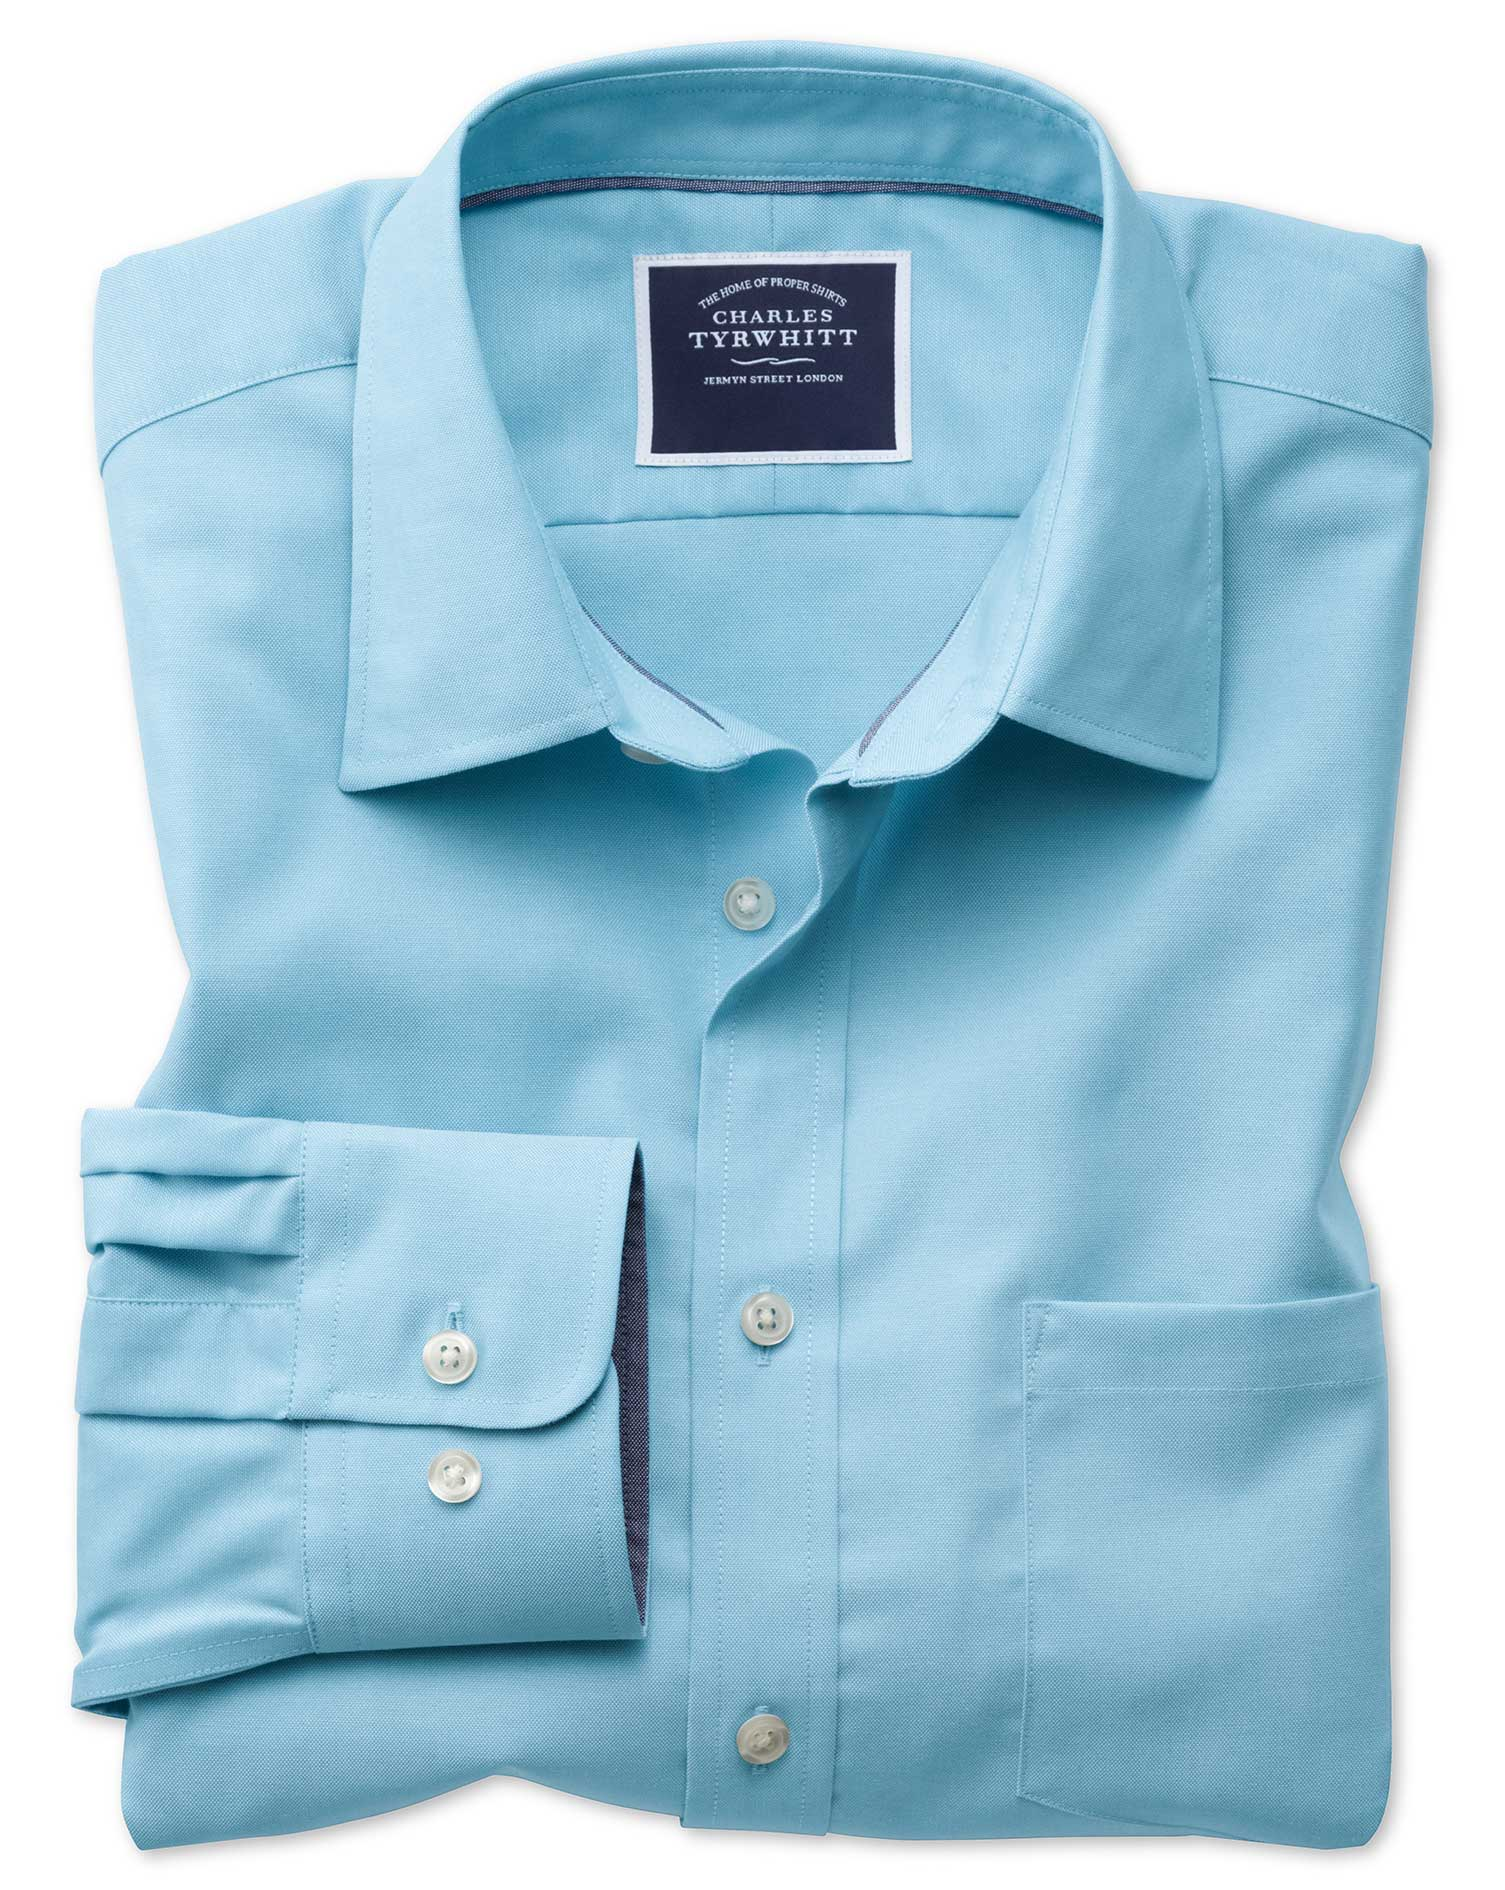 Slim Fit Non-Iron Oxford Turquoise Plain Cotton Shirt Single Cuff Size Small by Charles Tyrwhitt